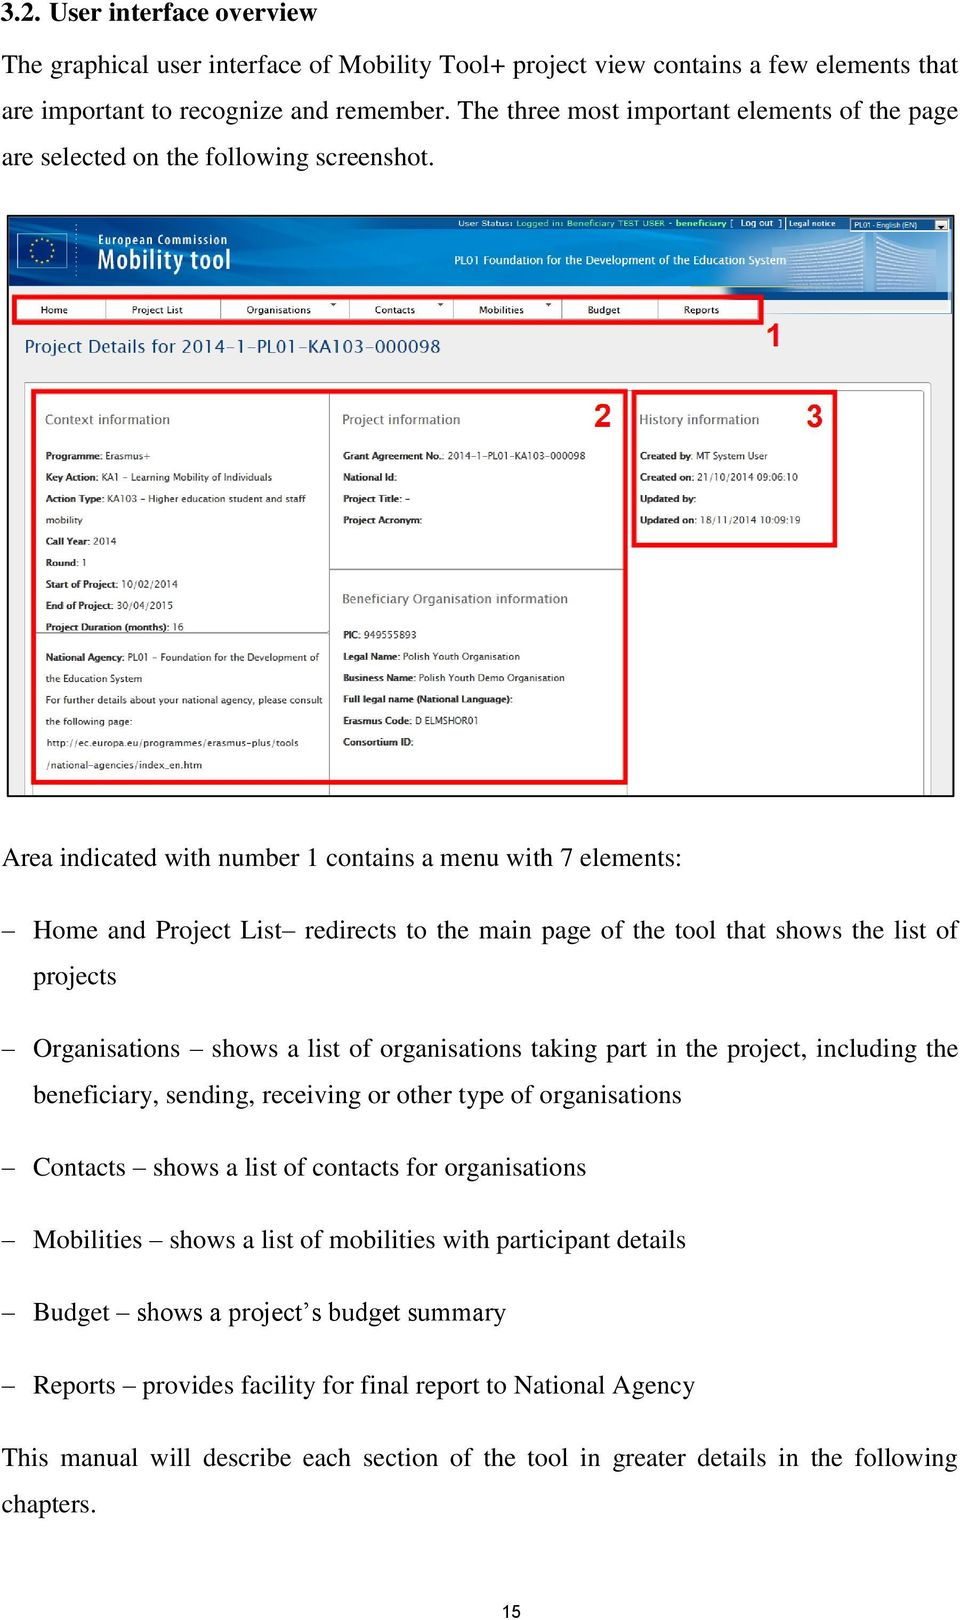 Area indicated with number 1 contains a menu with 7 elements: Home and Project List redirects to the main page of the tool that shows the list of projects Organisations shows a list of organisations